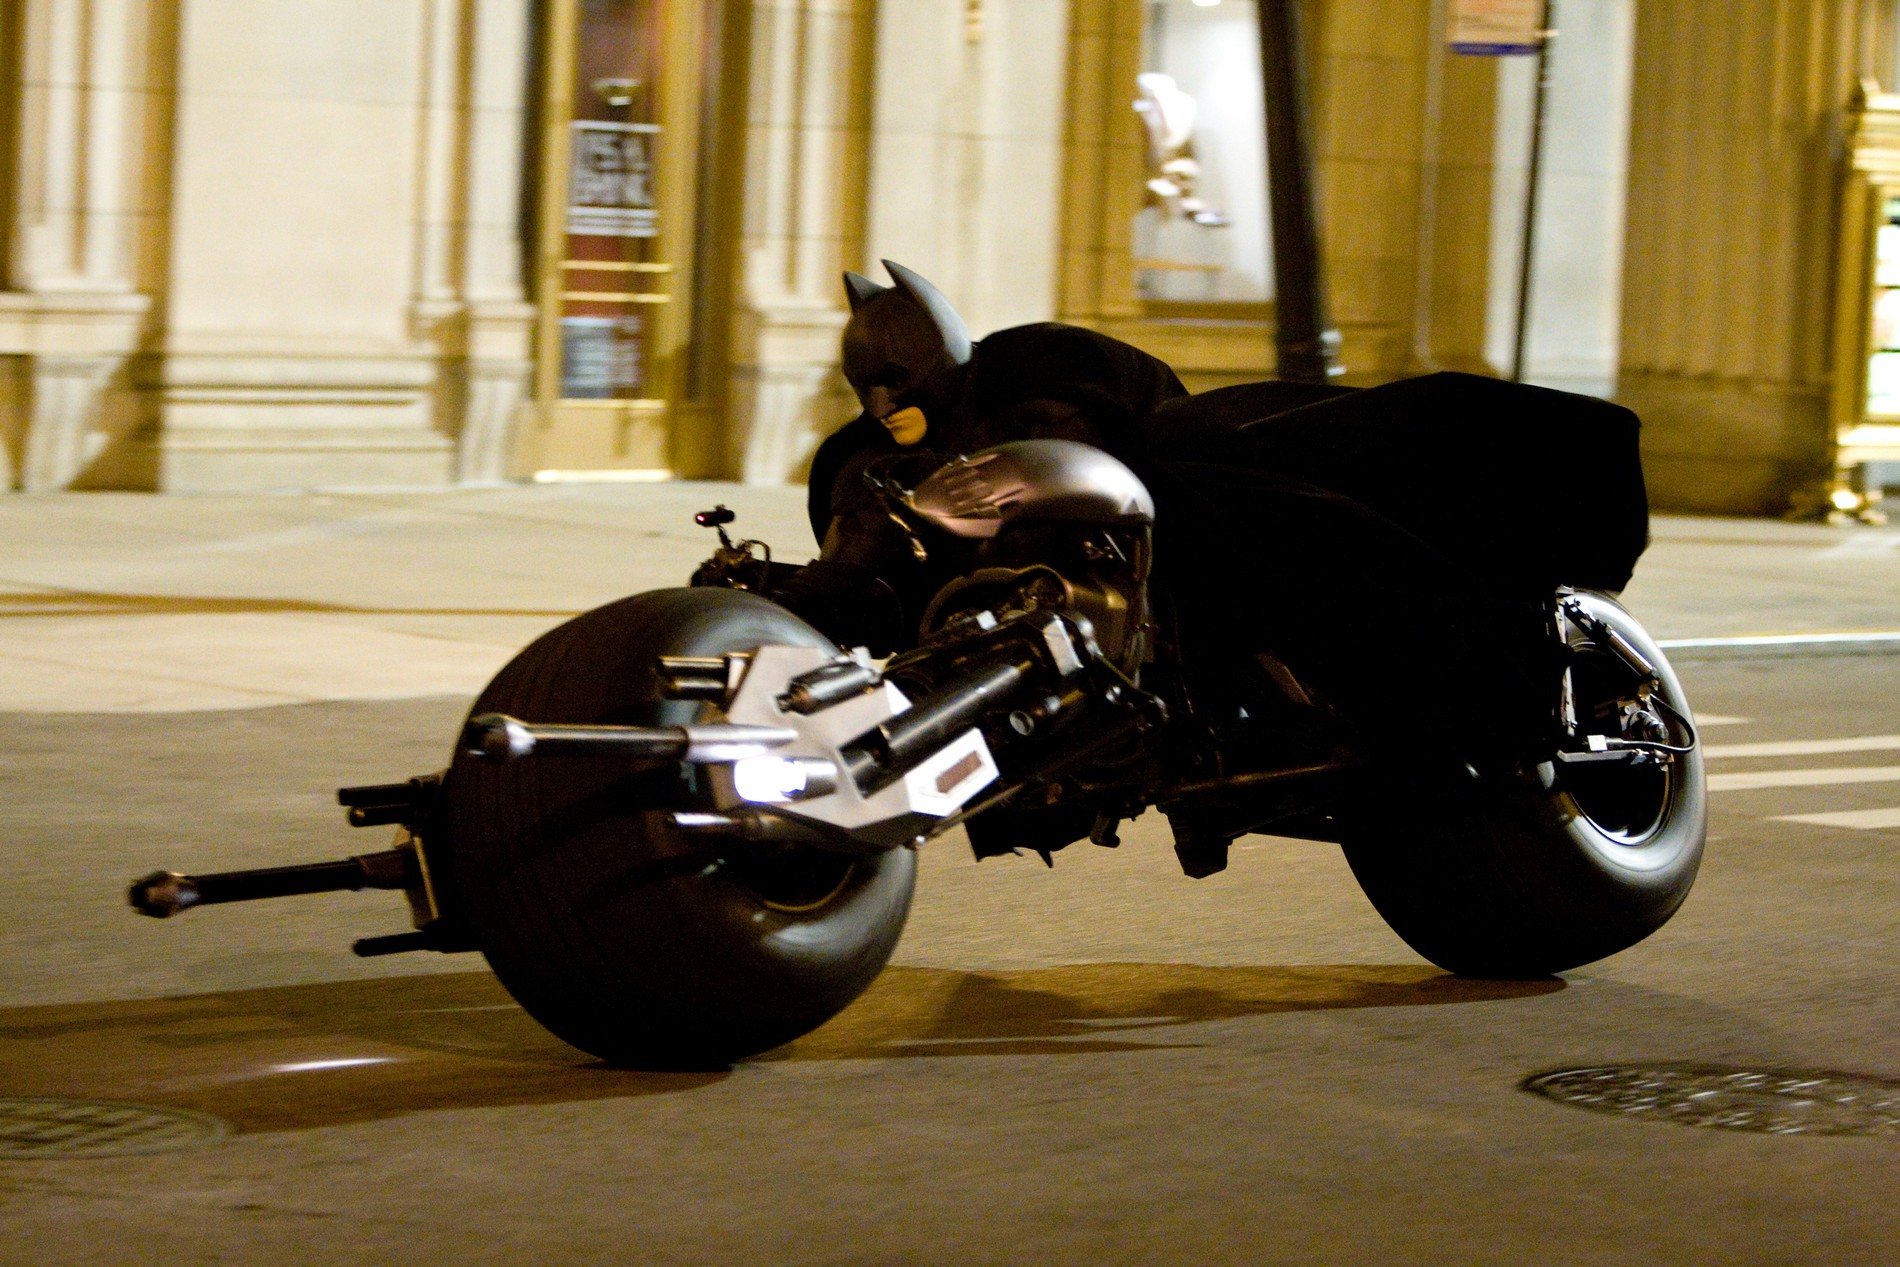 Batman dark knight motorcycle